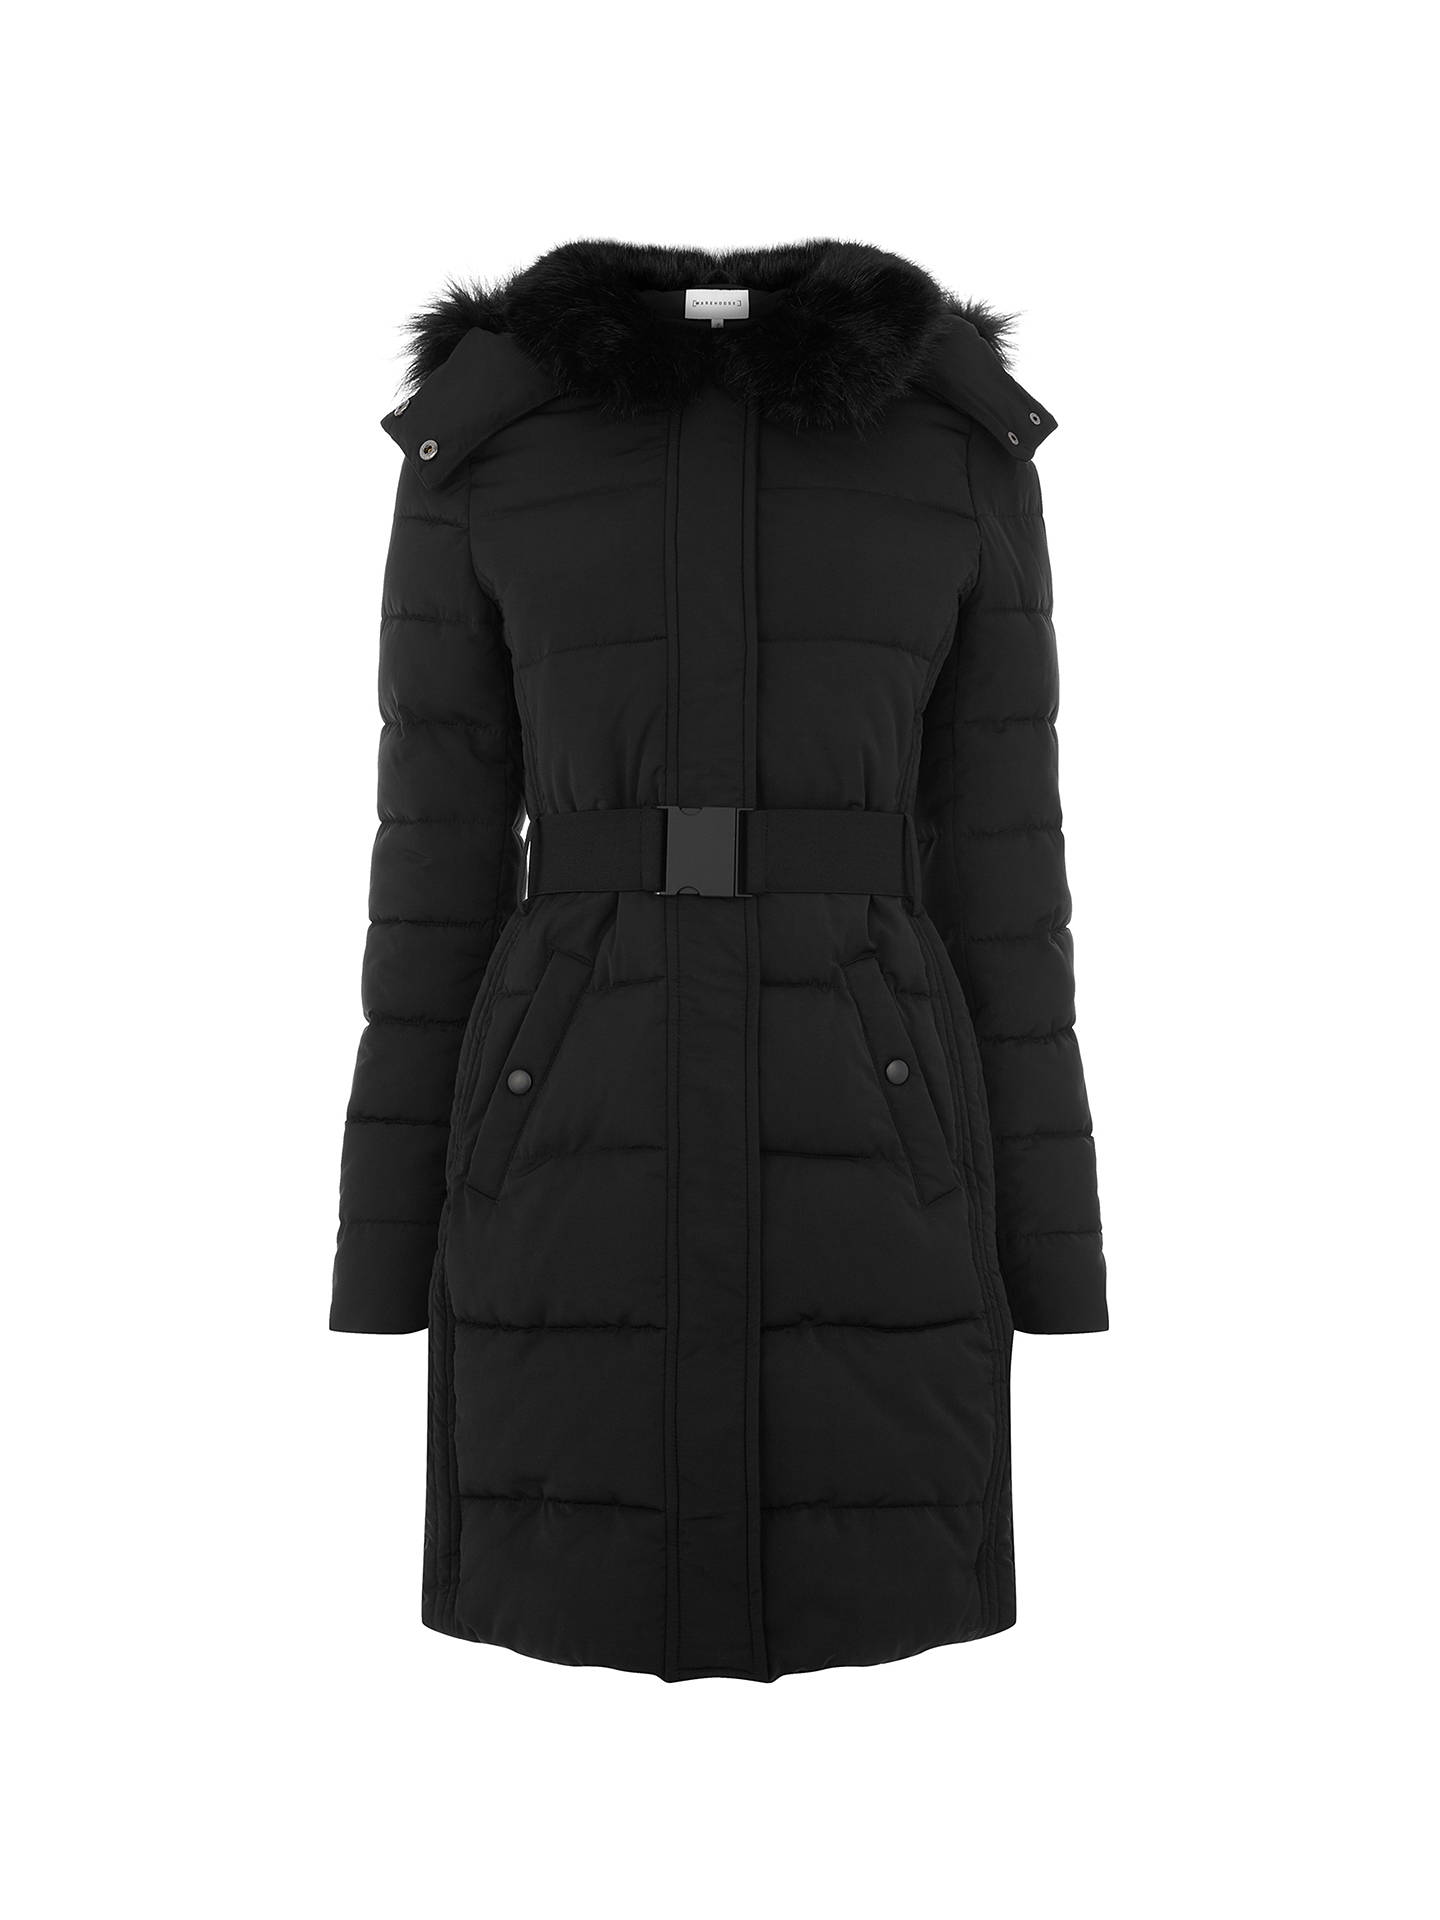 BuyWarehouse Long Panel Belted Wadded Coat, Black, 6 Online at johnlewis.com